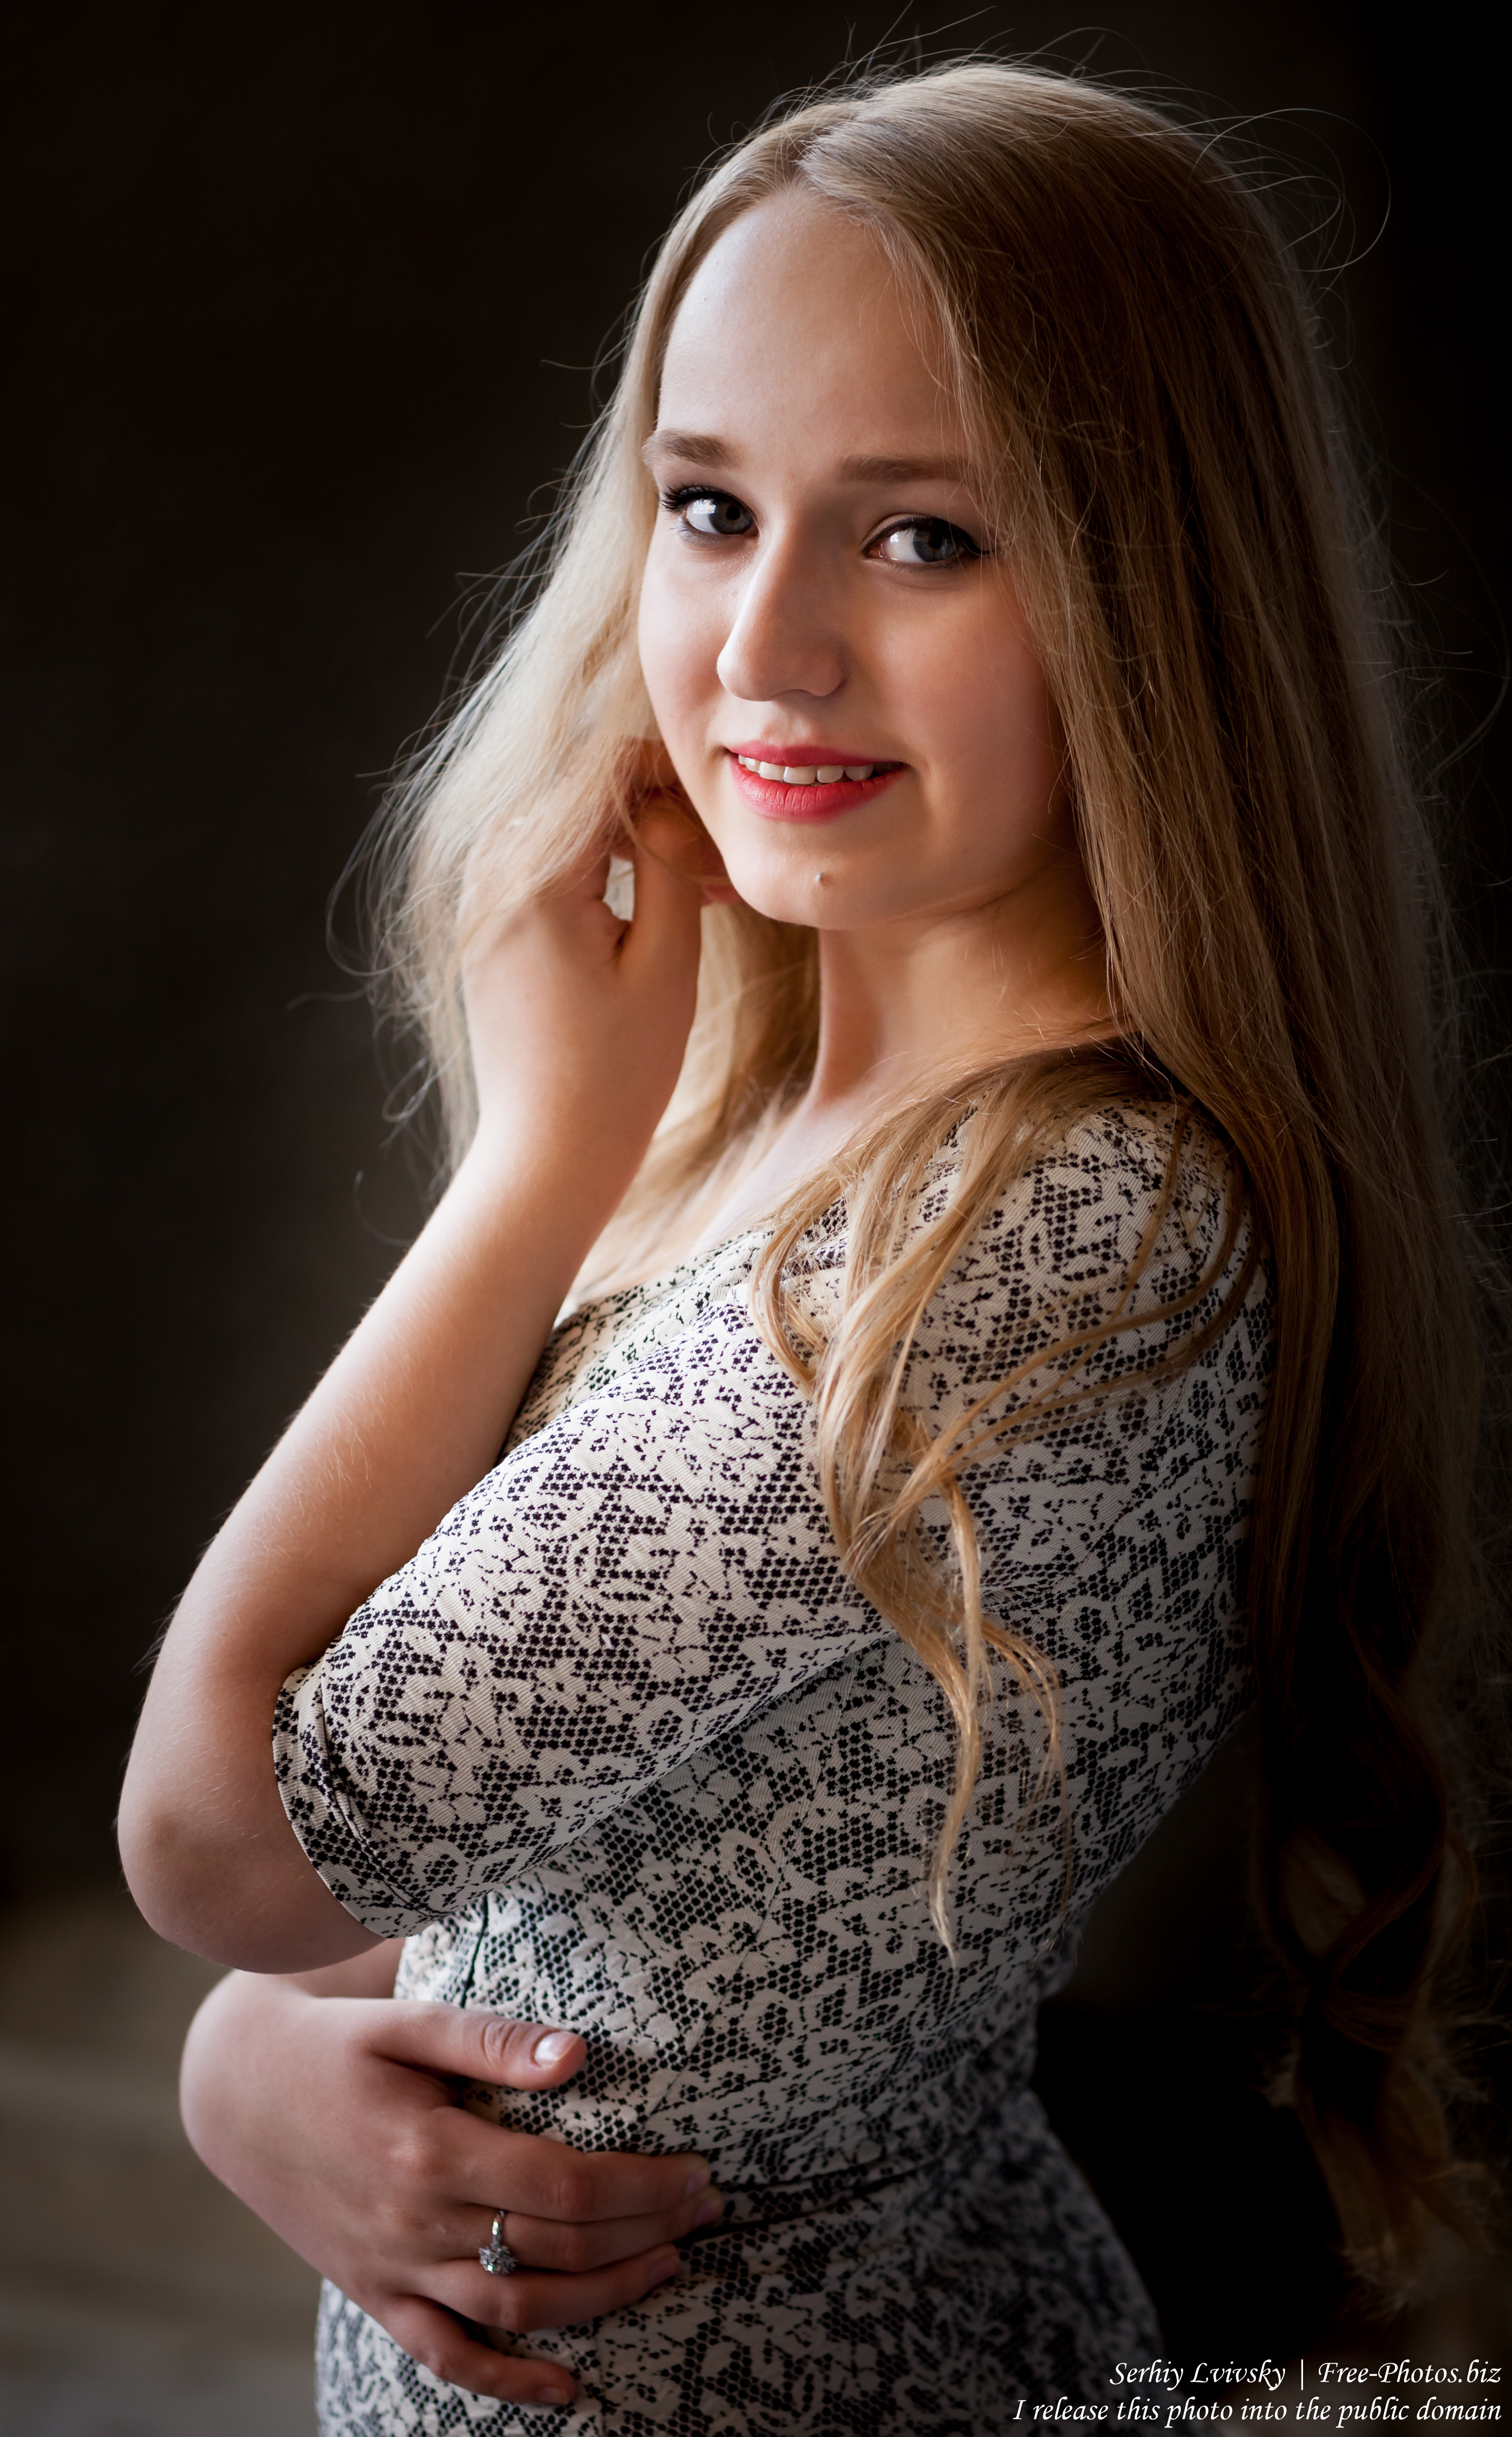 another natural blond 16-year-old girl photographed by Serhiy Lvivsky in July 2016, picture 7